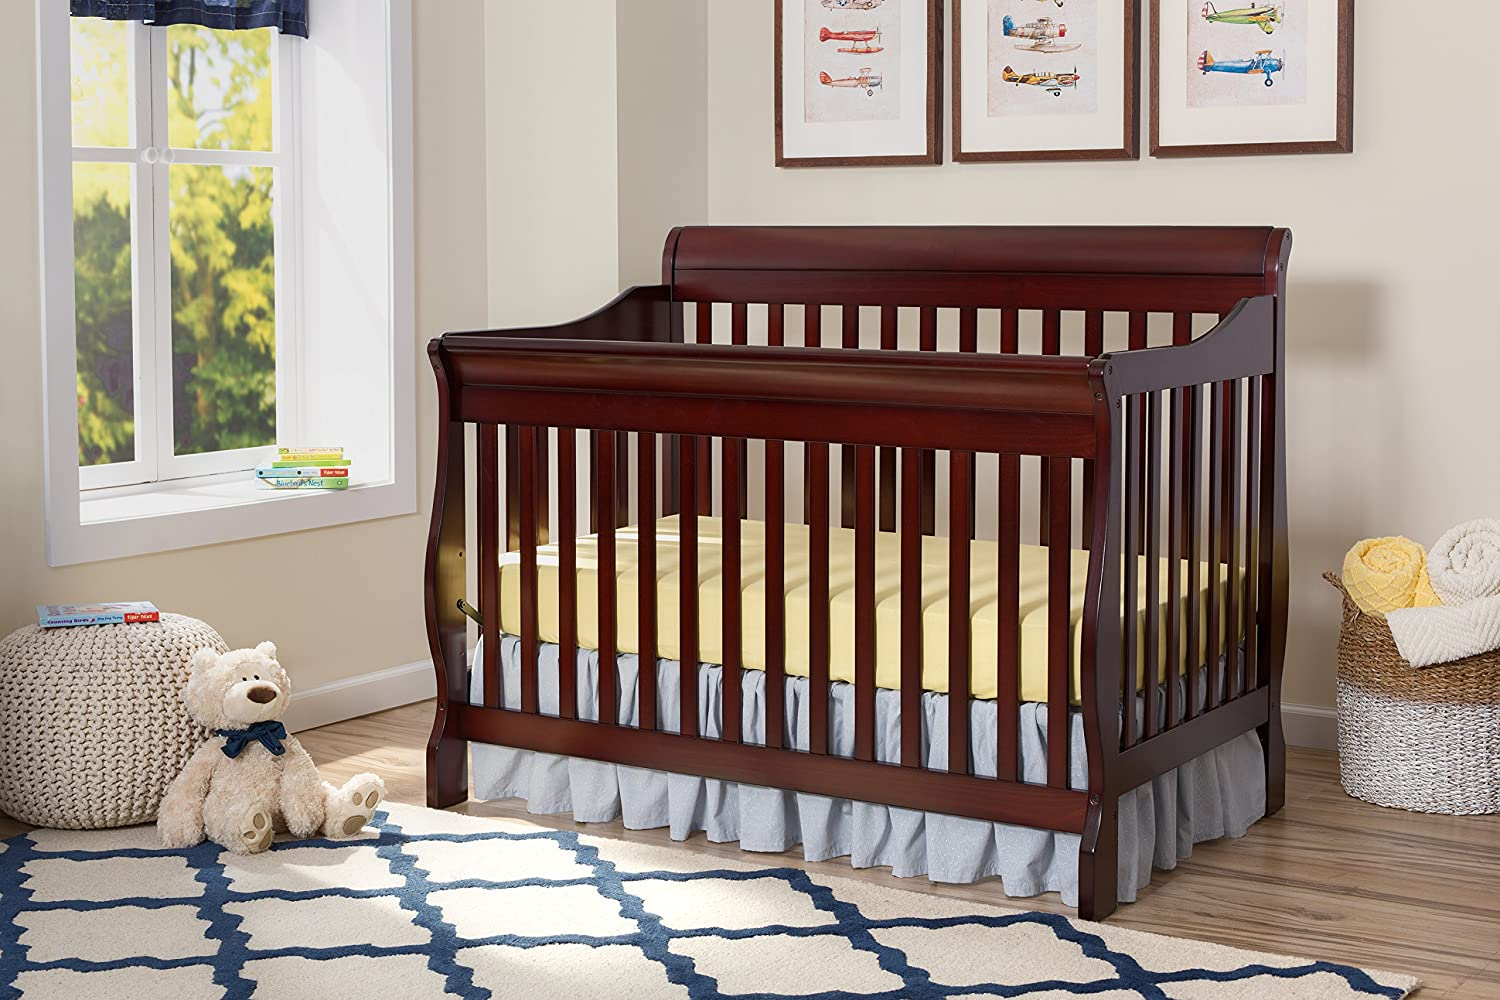 reviews crib home view portofino sets baby and cheap dresser l discount larger the furniture